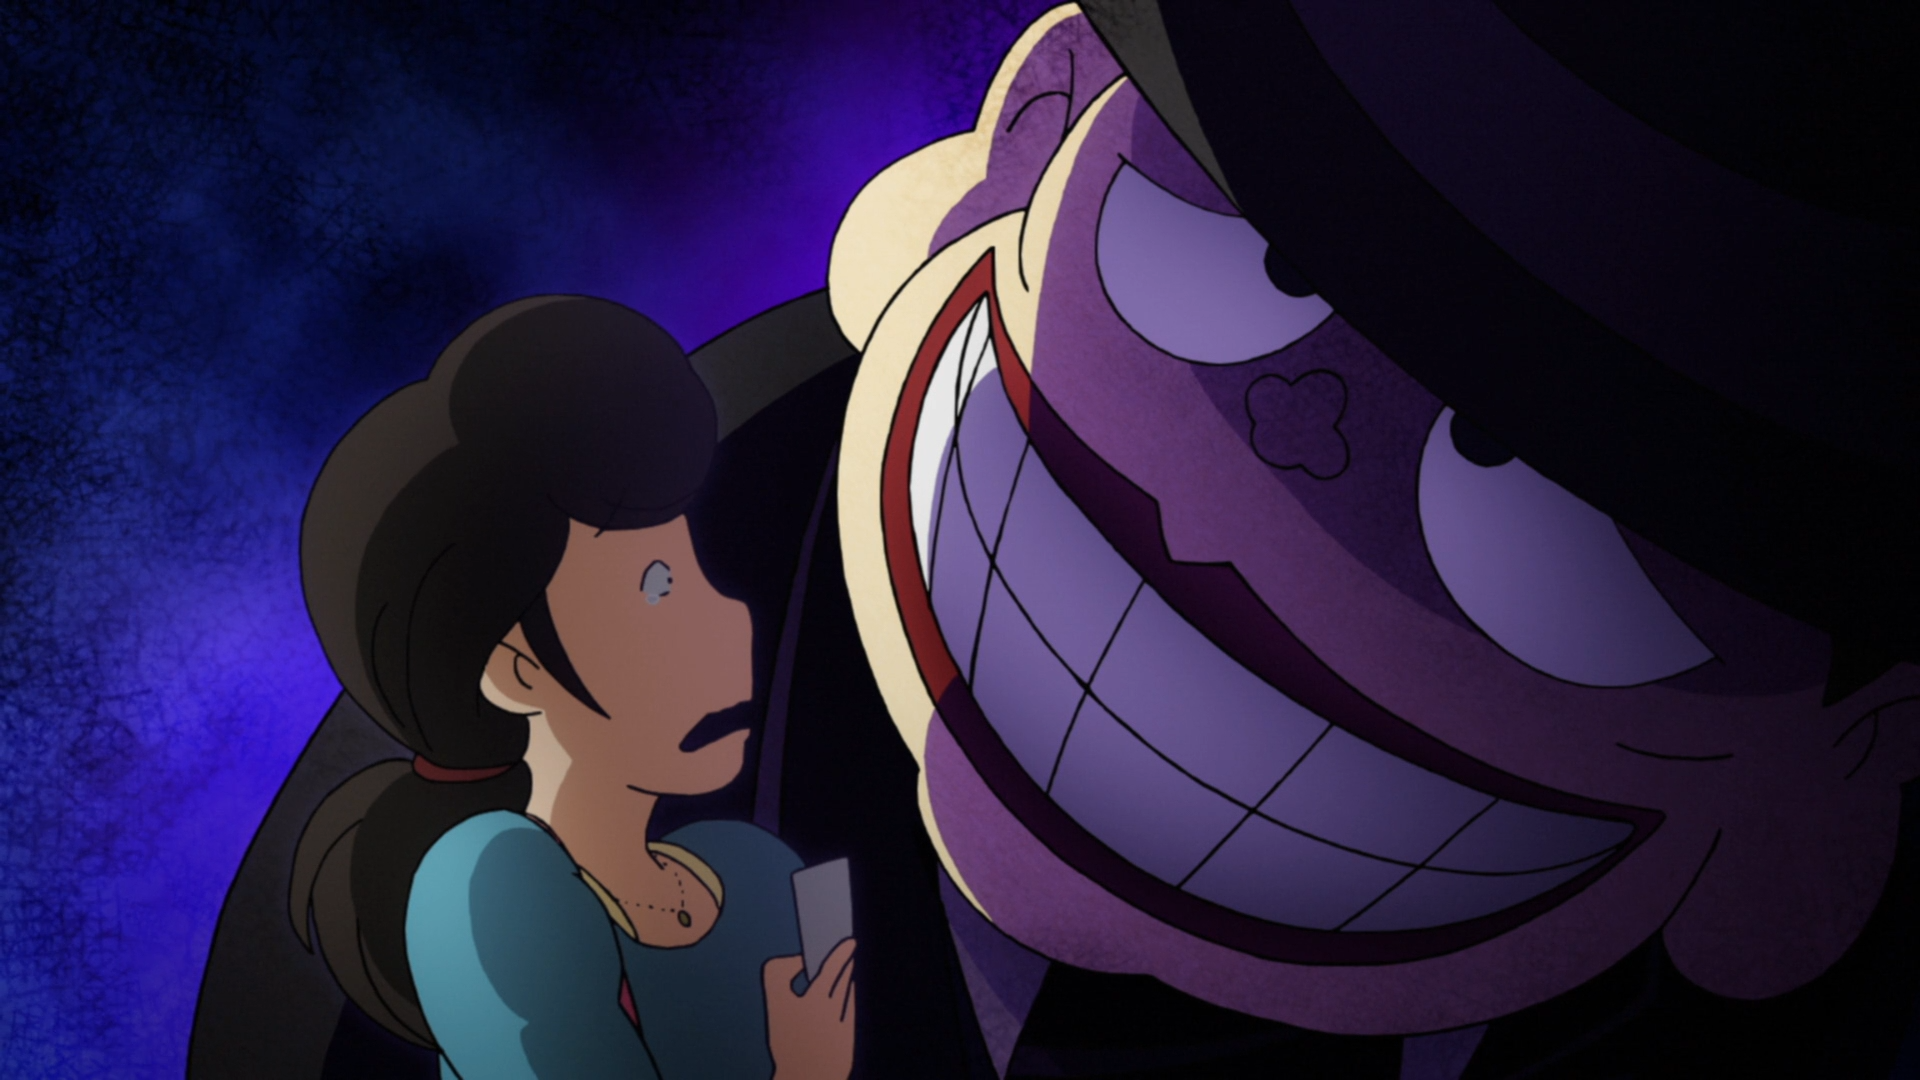 Moguro Fukuzo looms over a terrified potential client in a scene from the 2017 The Laughing Salesman TV anime.